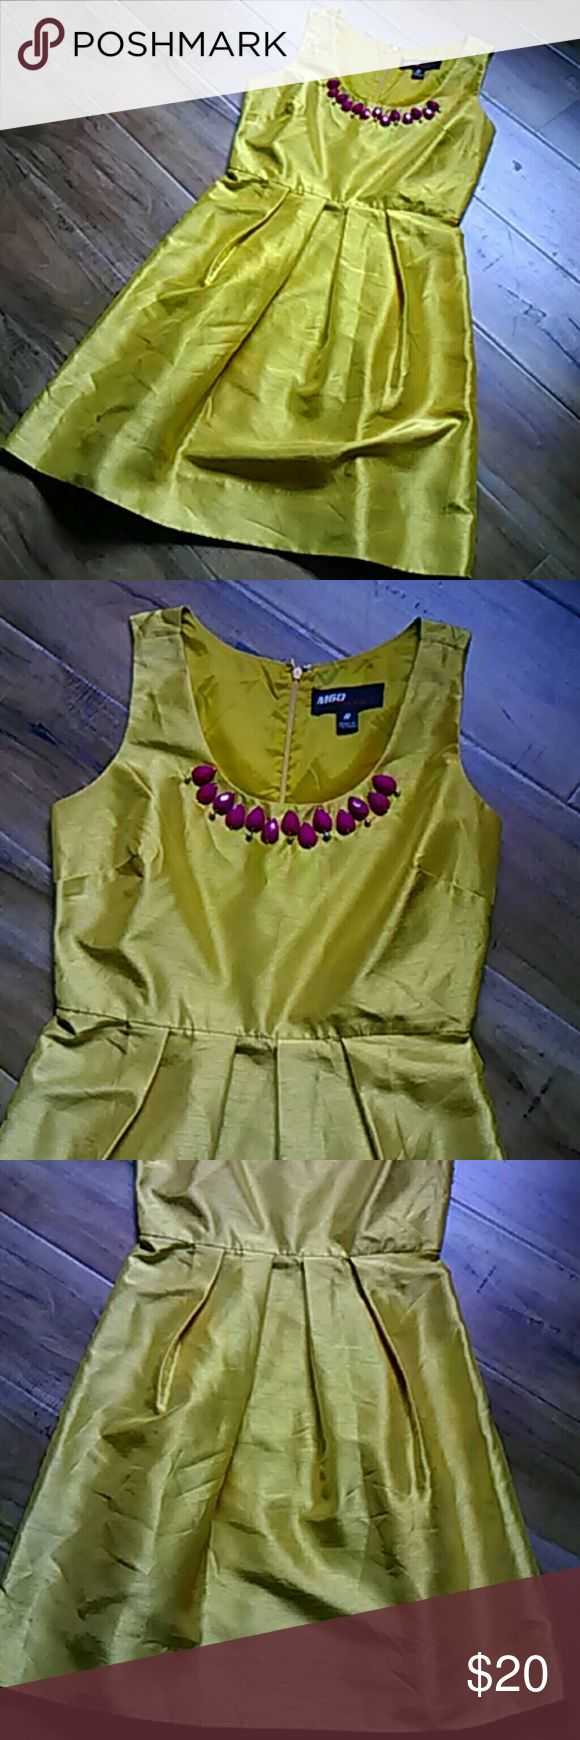 Miss Sixty dress size 6 Gorgeous yellow dress with fuschia embellishments at the neck. Just in time for Easter spring. This dress is 36 inches long. It is in good condition. This dress is 100% polyester. Miss Sixty Dresses Midi